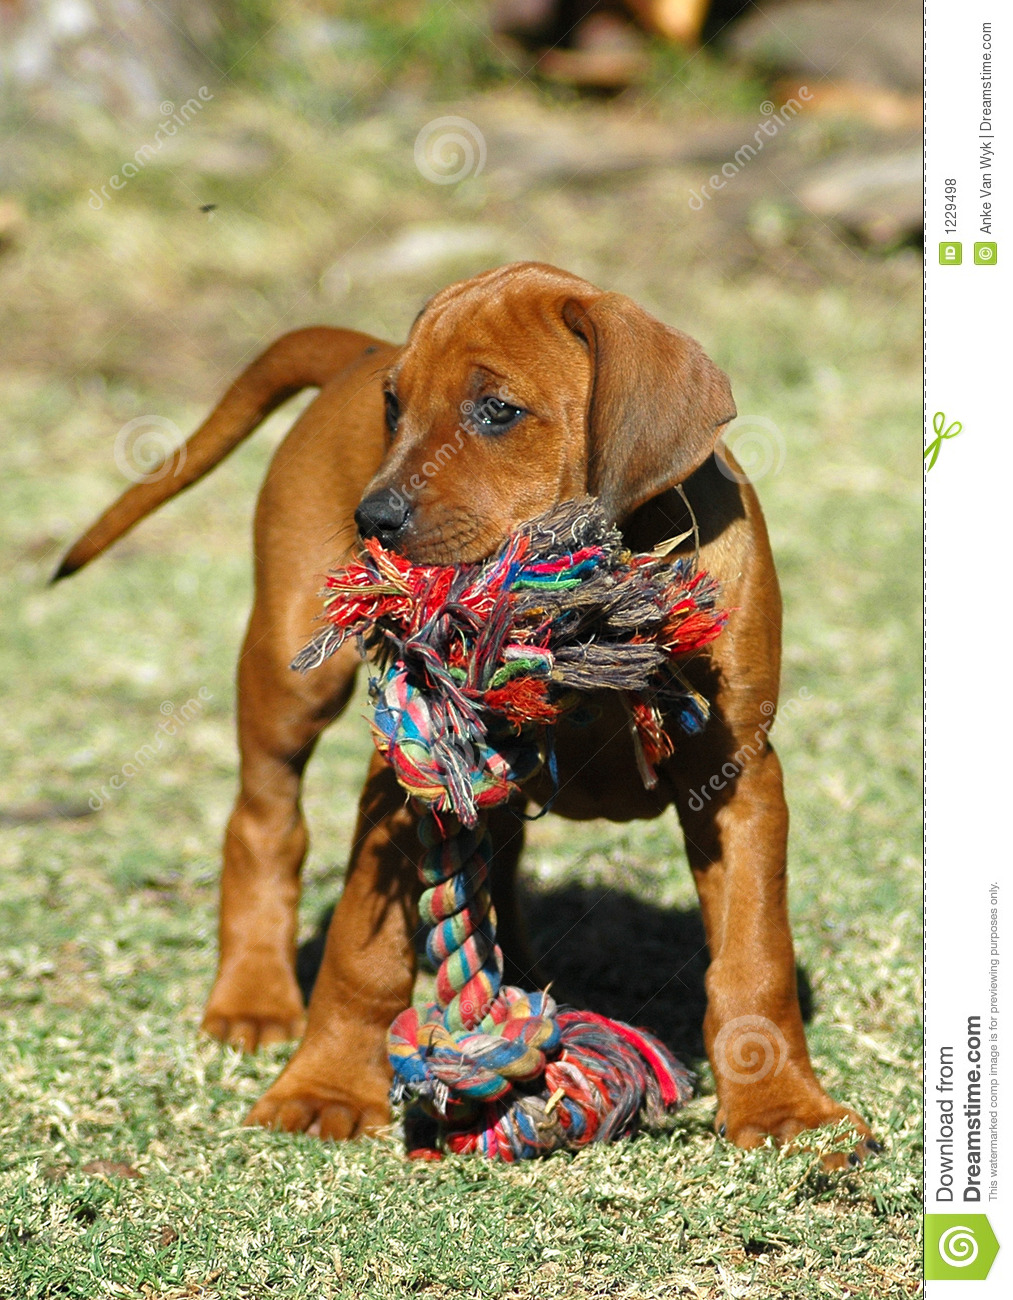 Dog puppy with toy